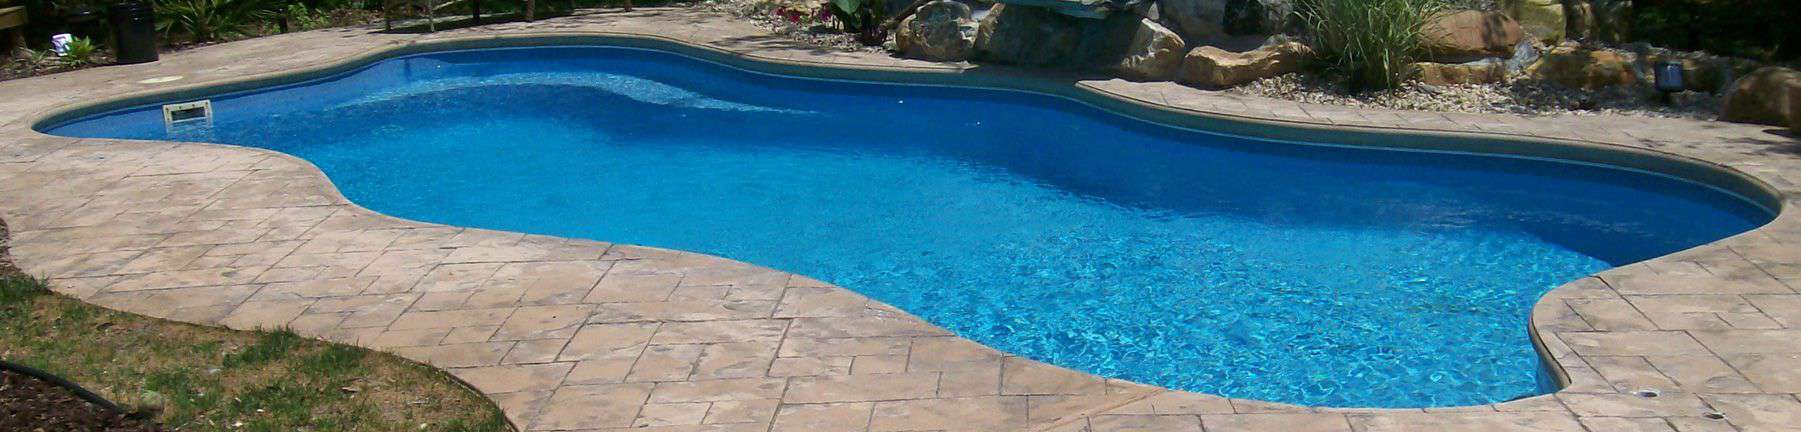 Stamped Concrete Contractor Fairport, NY